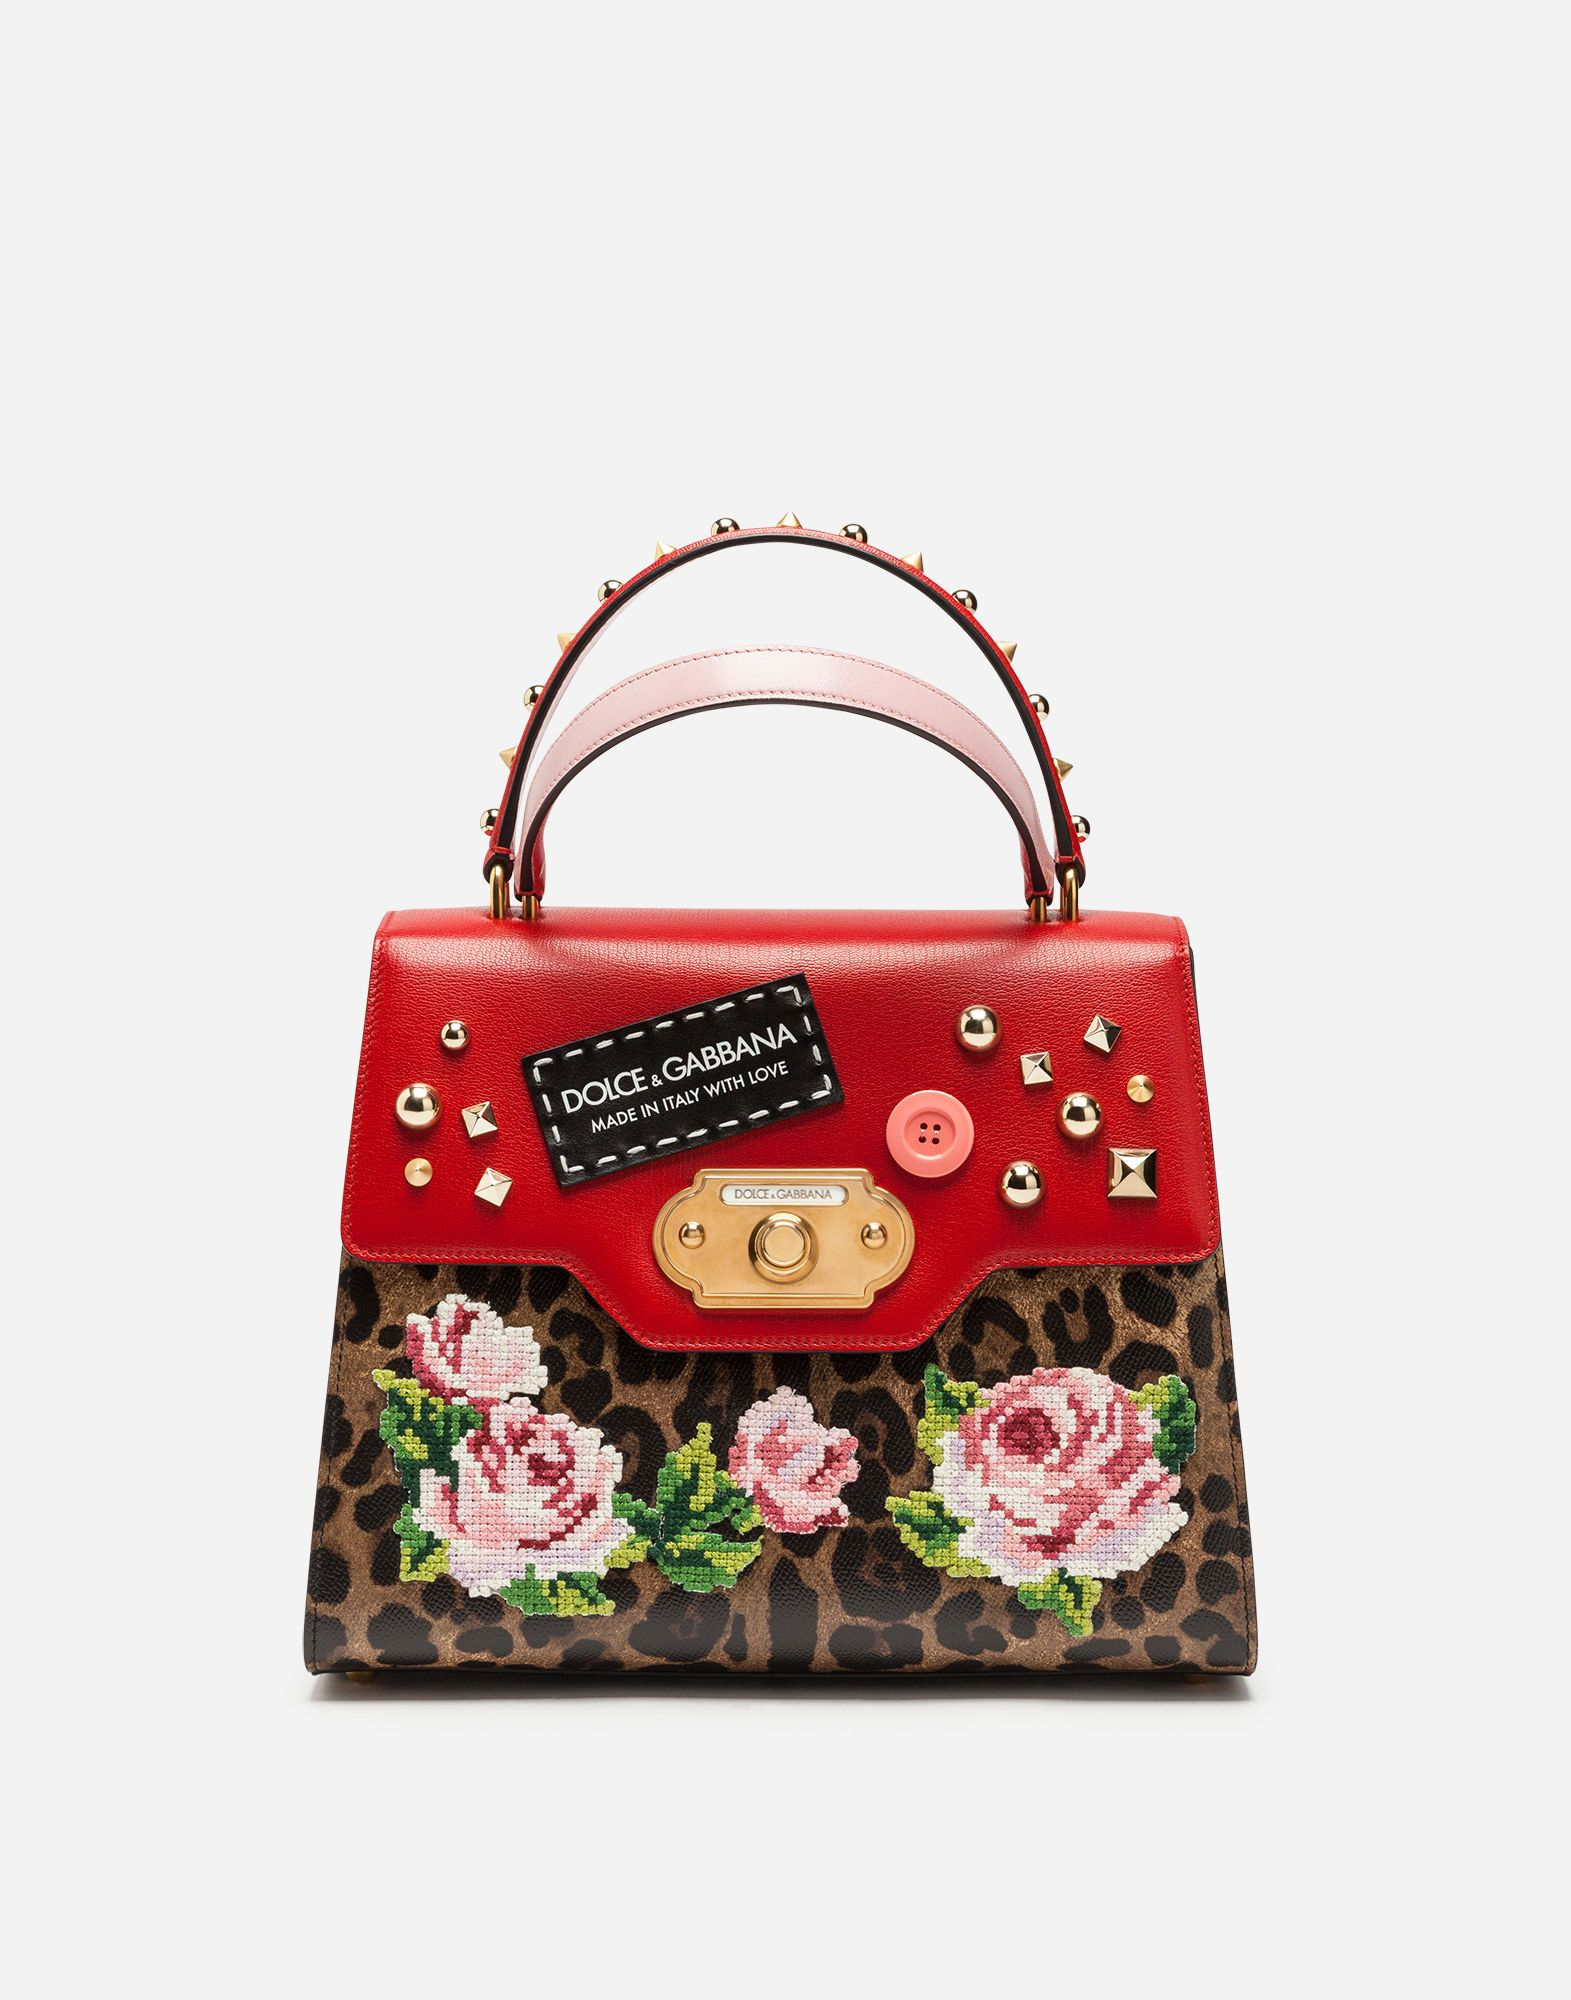 DOLCE   GABBANA WELCOME BAG HANDBAG IN TWO MATERIALS WITH EMBROIDERY.   dolcegabbana  bags  shoulder bags  hand bags  rayon  leather  cotton   ccdbcbbf7ec87